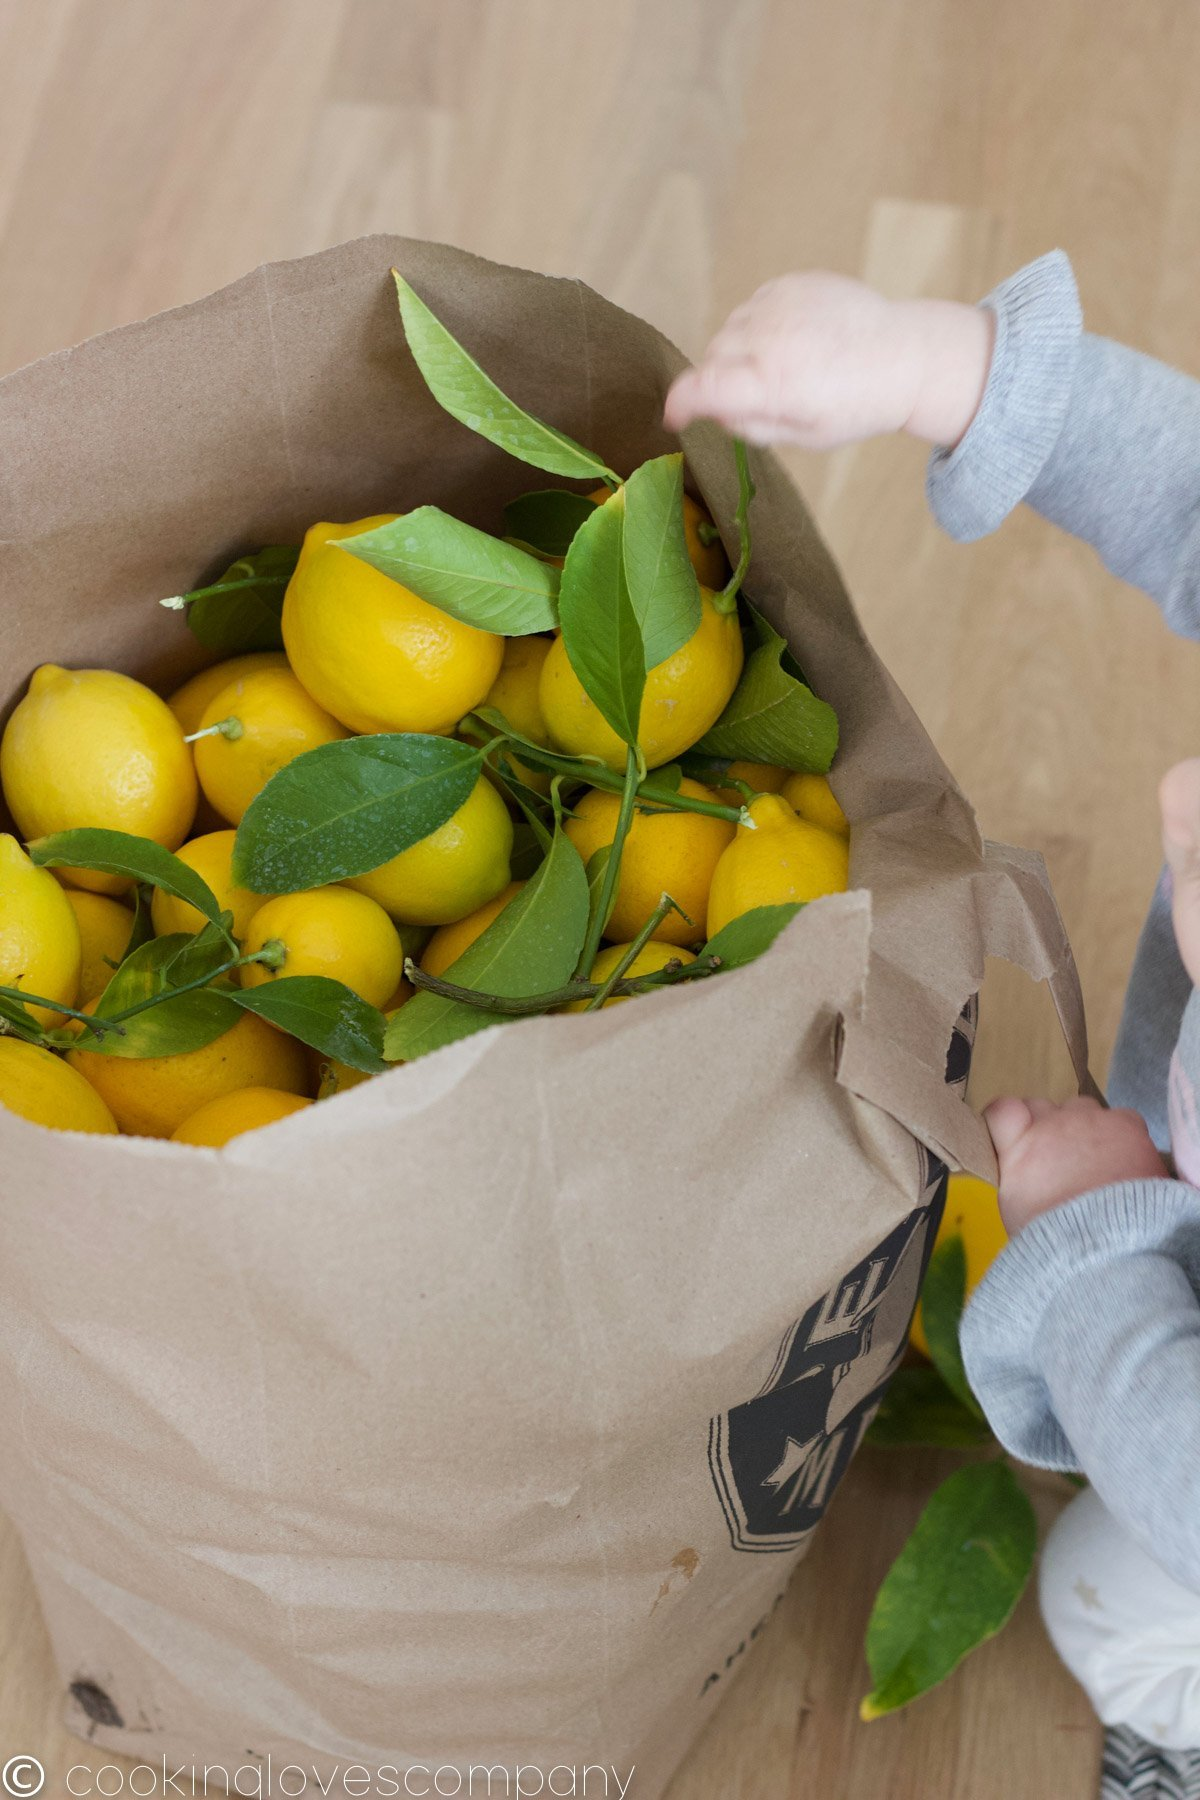 A brown paper bag full of lemons and a baby going through the bag.